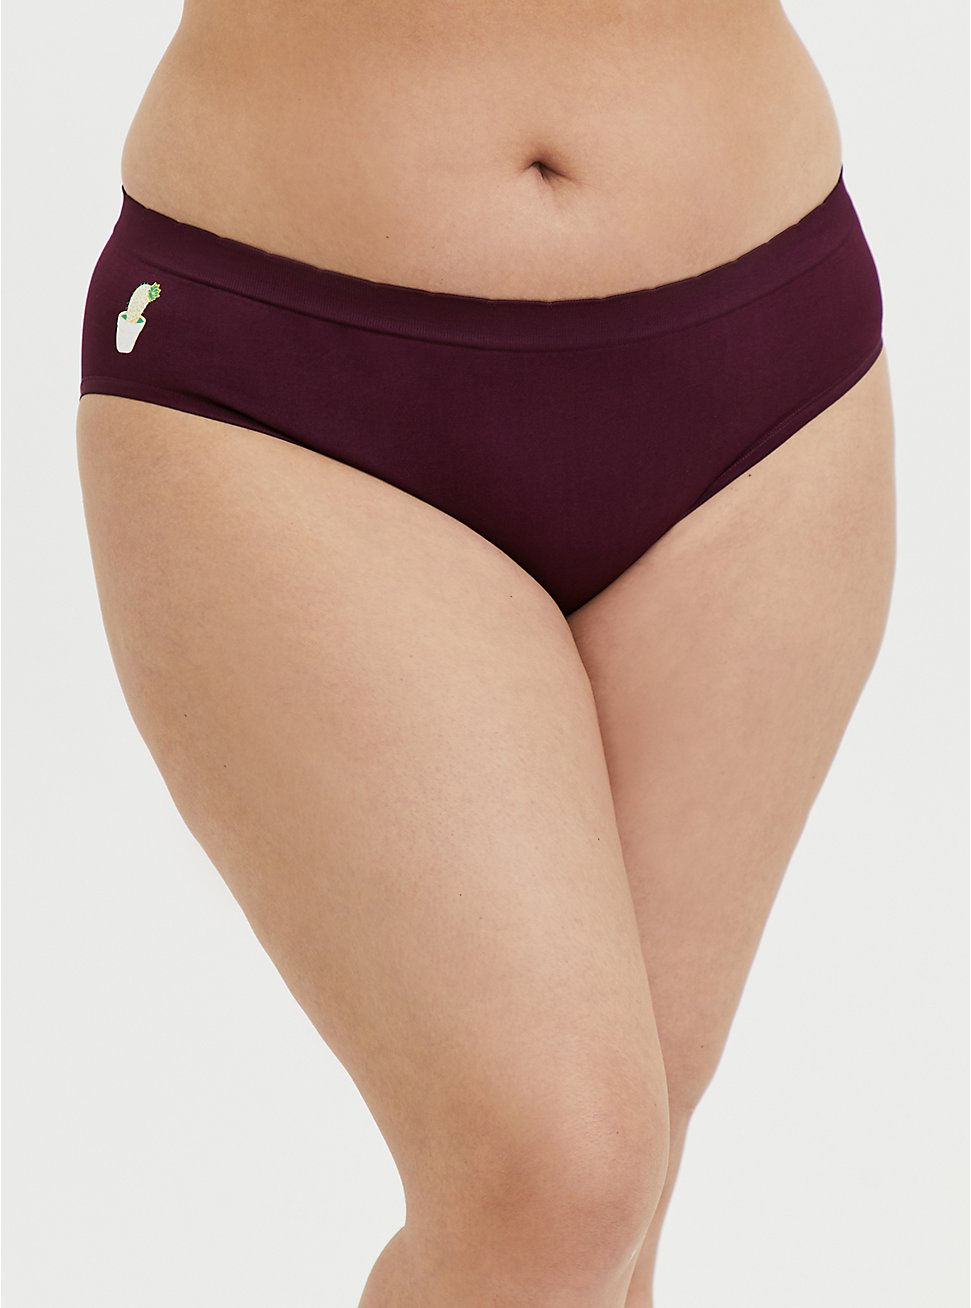 Plus Size Burgundy Cactus Seamless Hipster Panty, HIGHLAND THISTLE, hi-res